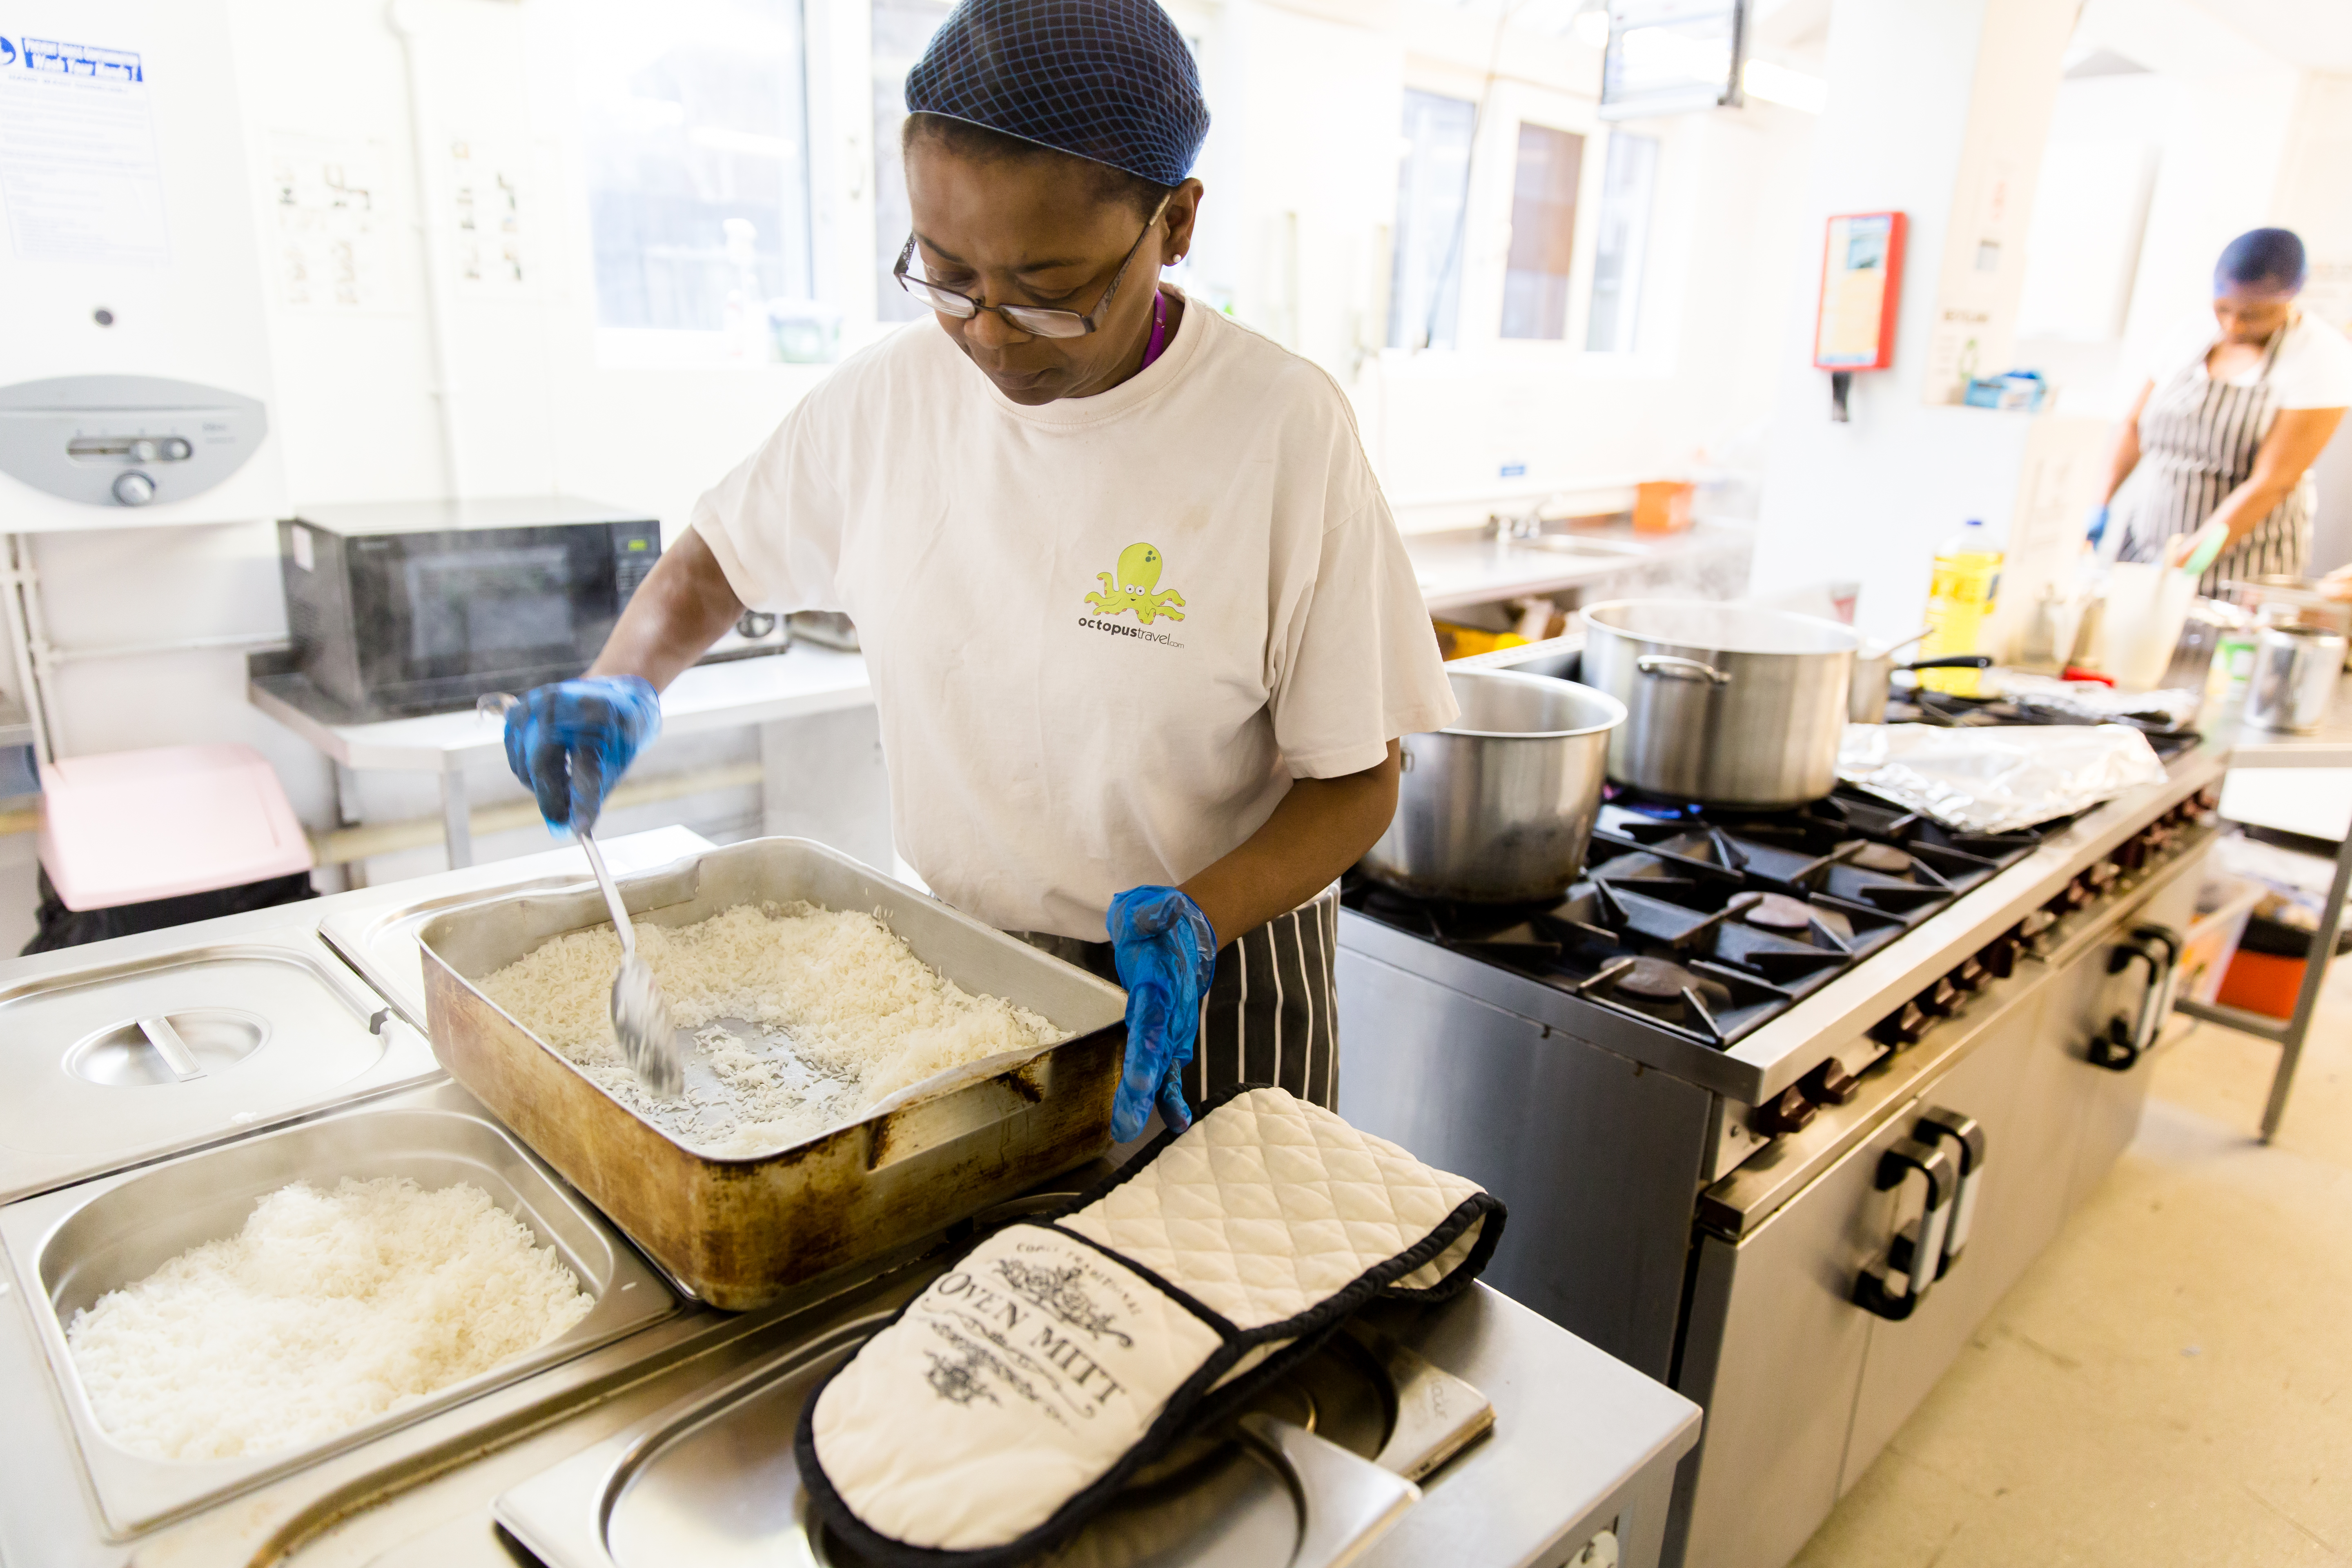 Volunteer preparing lunch for older people at Disabled People's Contact